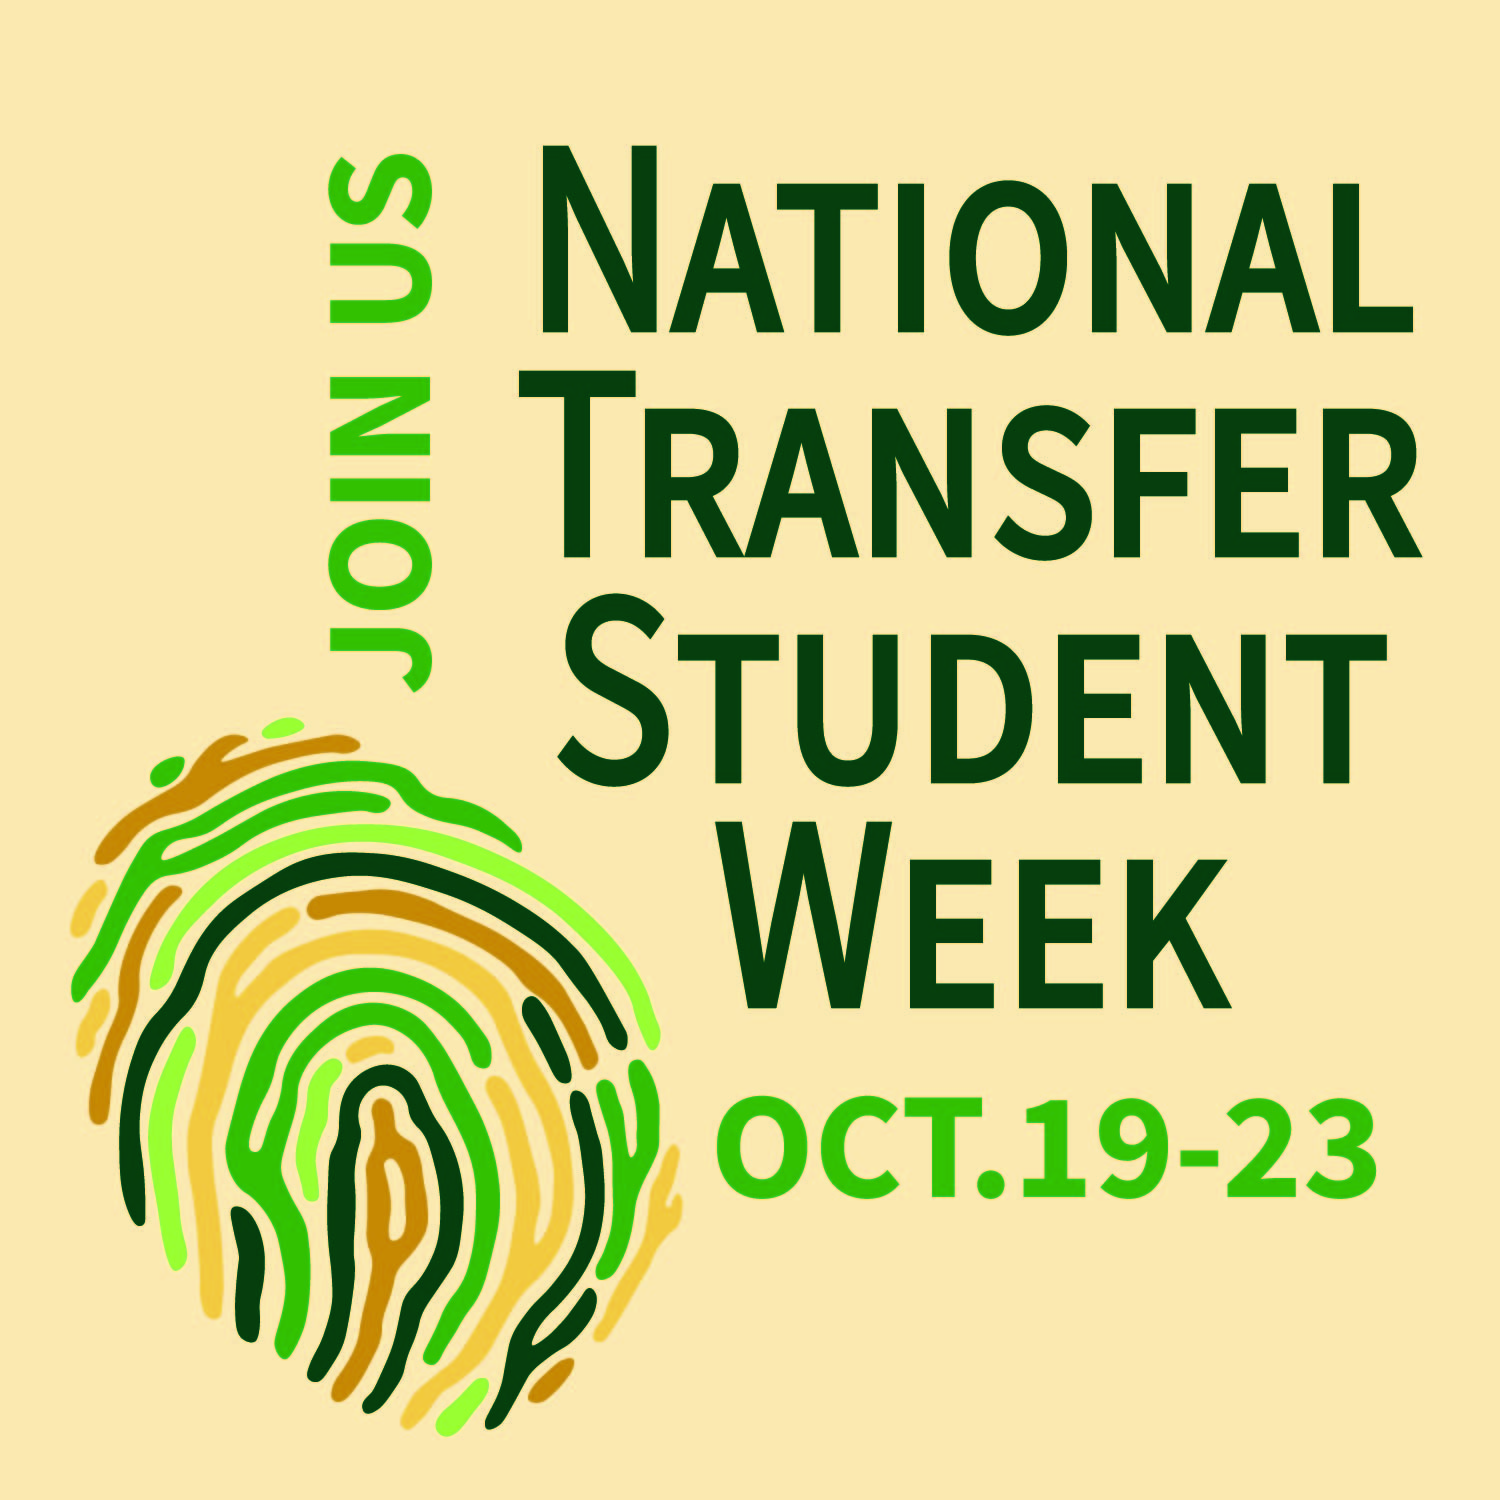 advertising dates of national transfer student week in 2020